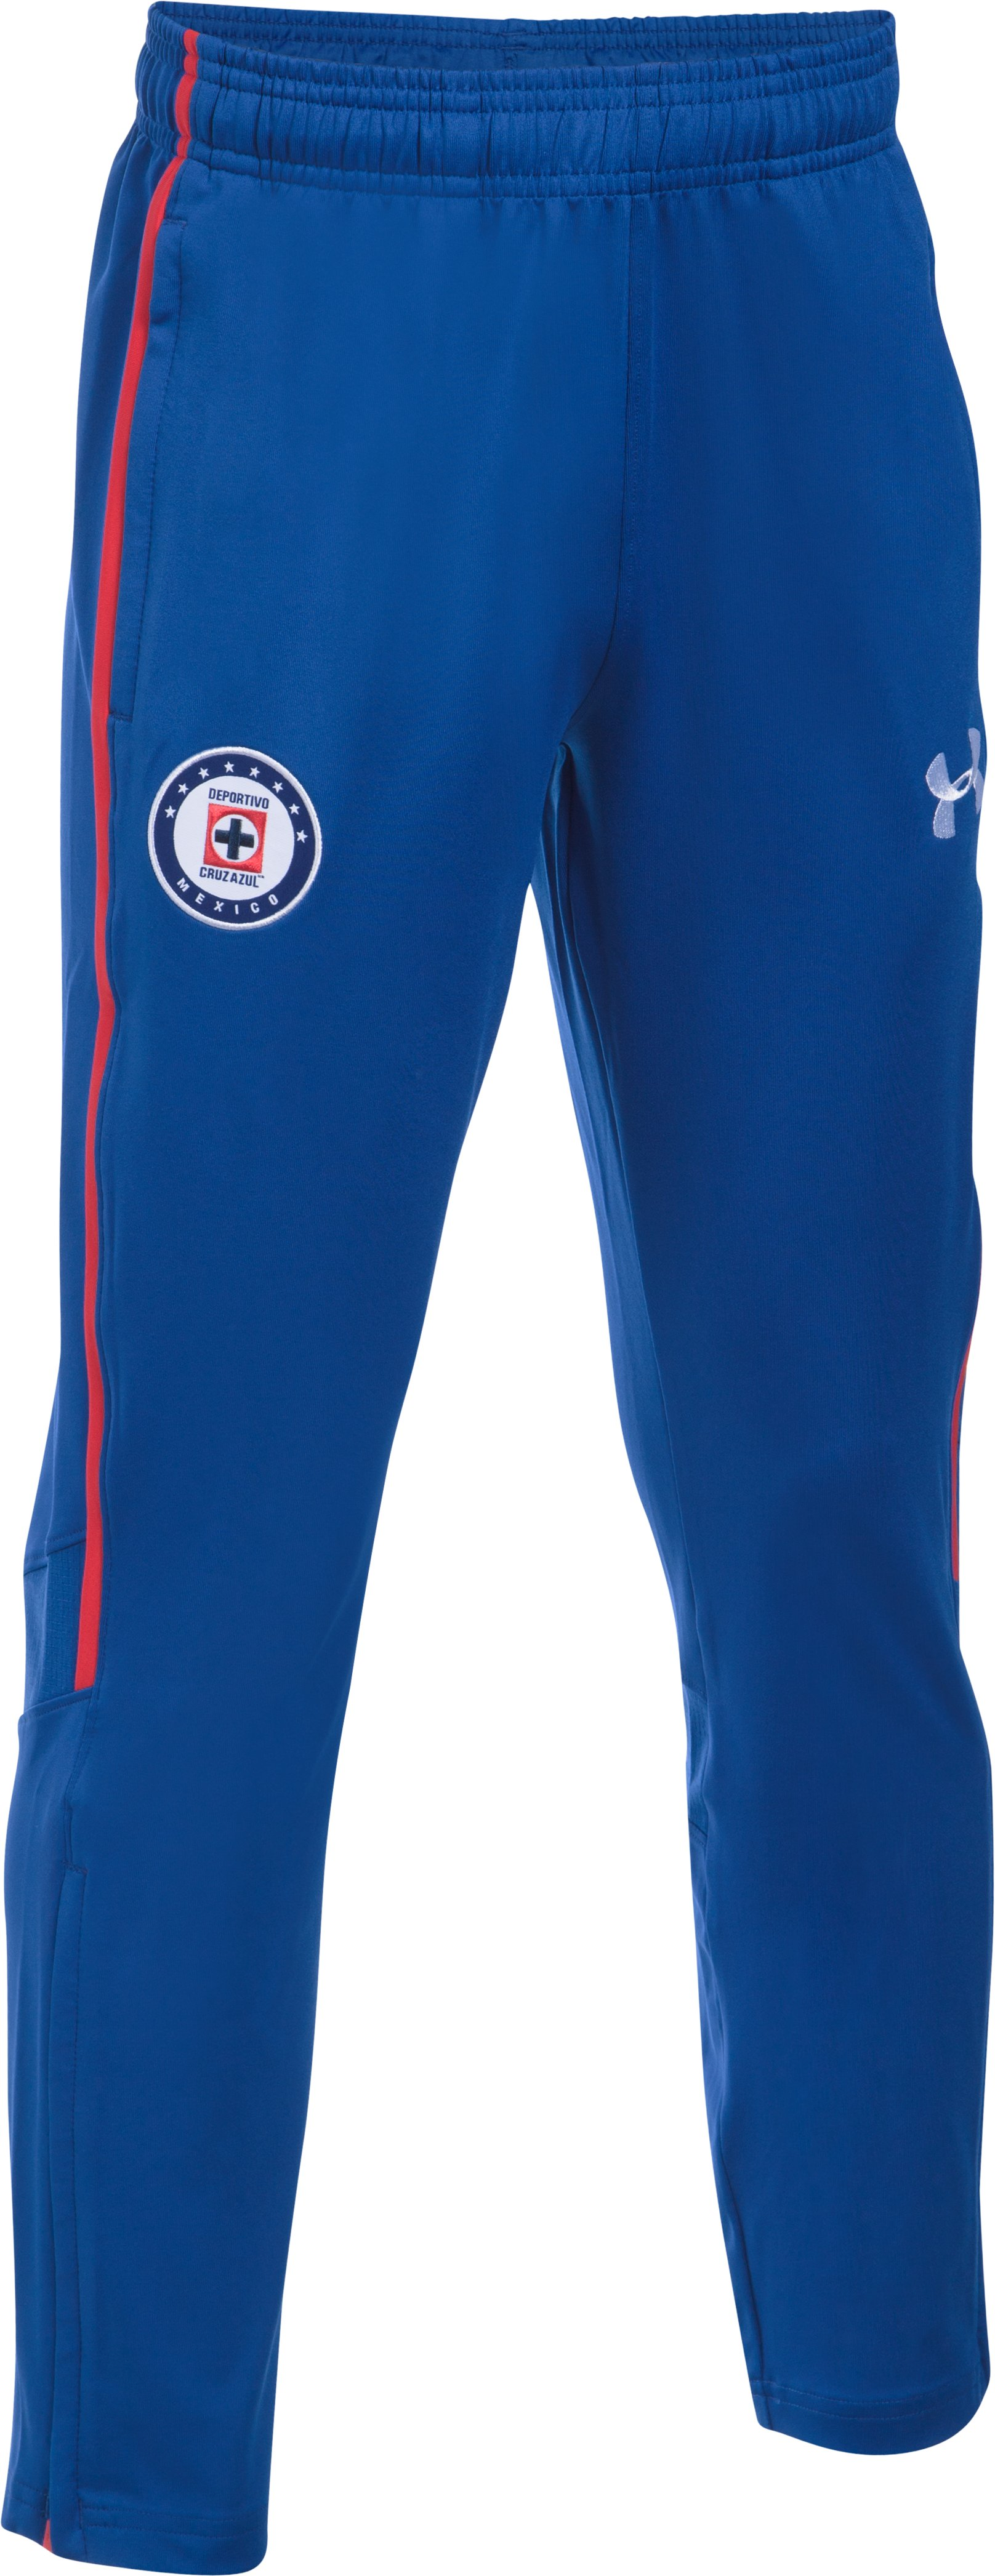 stretchy pants Kids' Cruz Azul Training Pants 4-way <strong>stretch</strong> construction moves better in every direction.